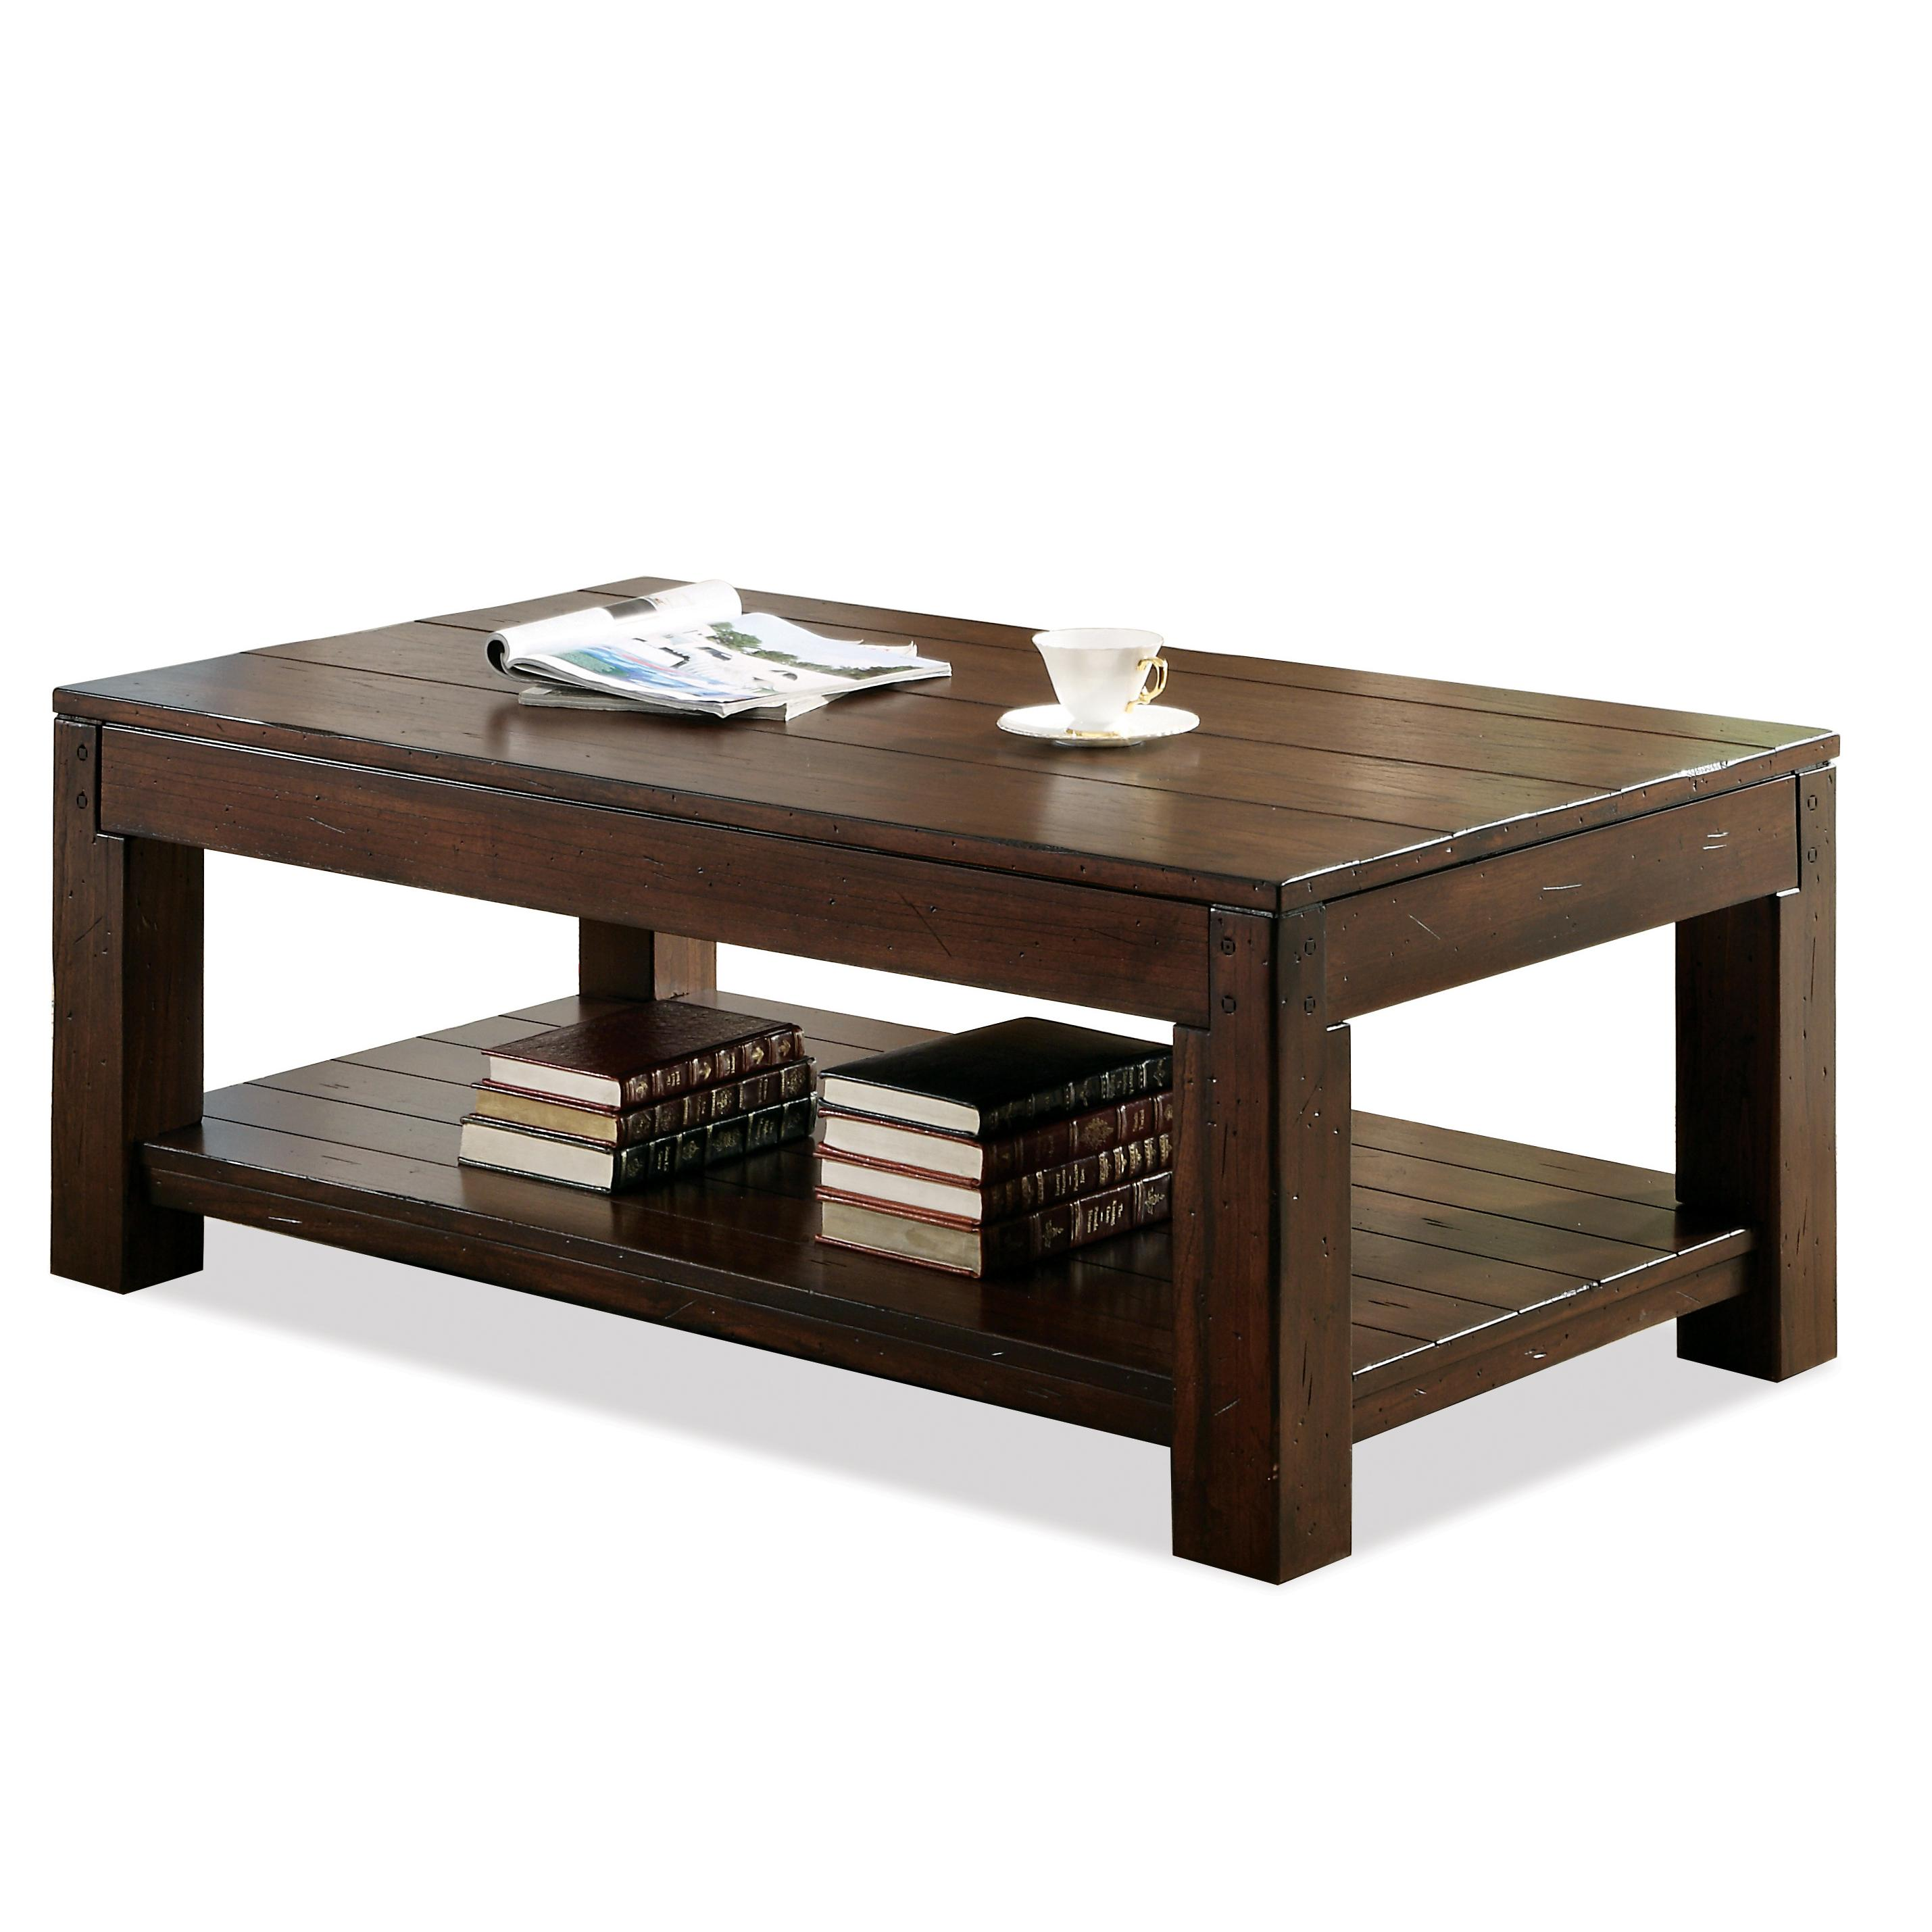 Riverside Furniture Castlewood Coffee Table - Item Number: 335-02